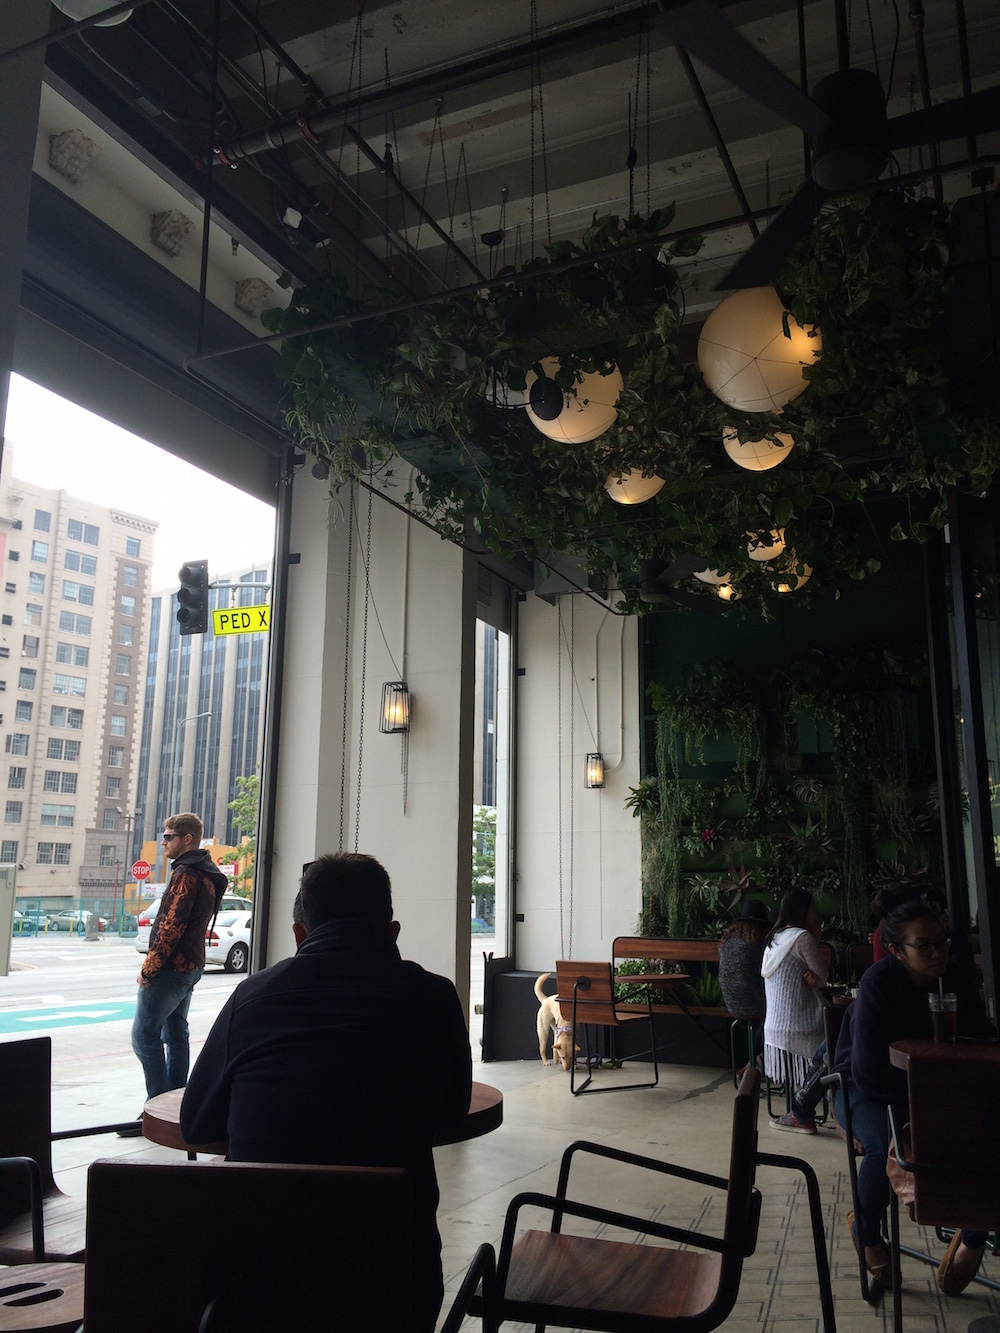 Photos taken at verve coffee in downtown los angeles